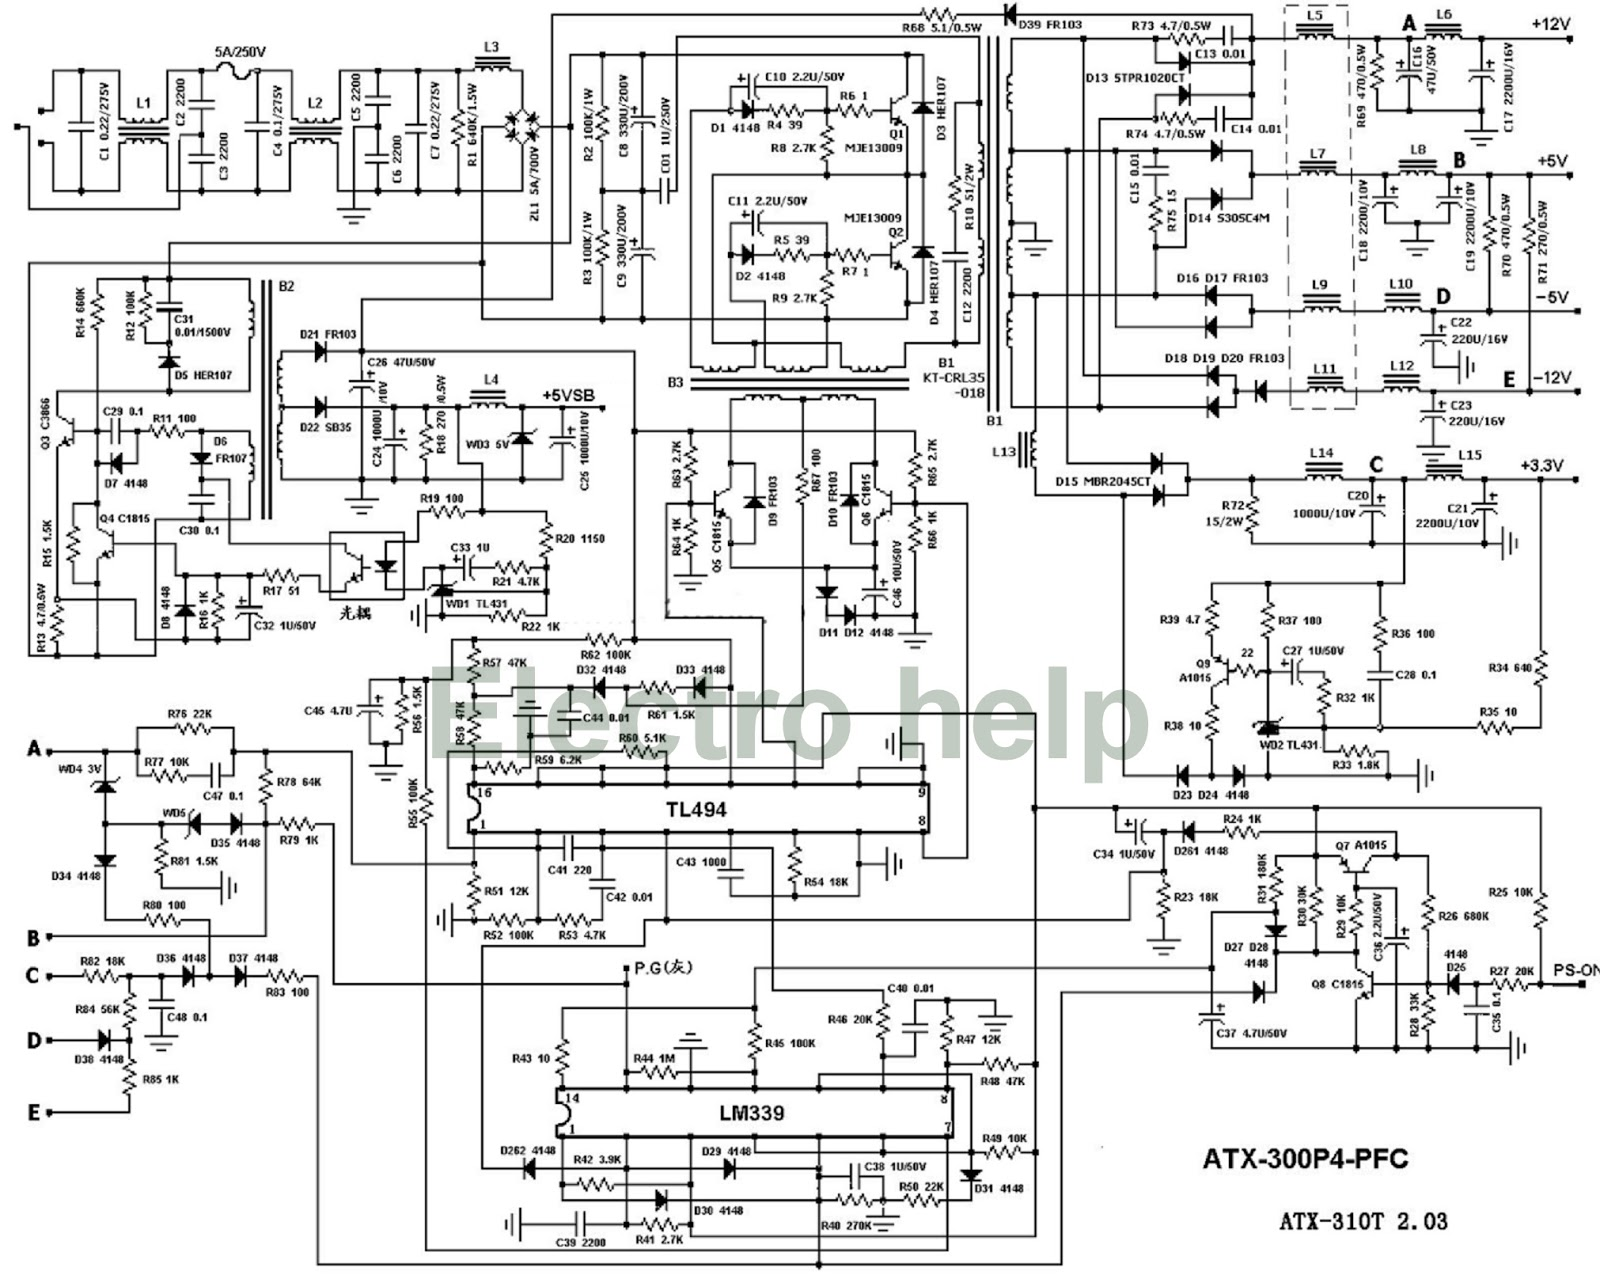 Atx Power Supply Desktop Computers Atx300p4 Schematic Mje13009 Psu Wiring Diagram Tl494